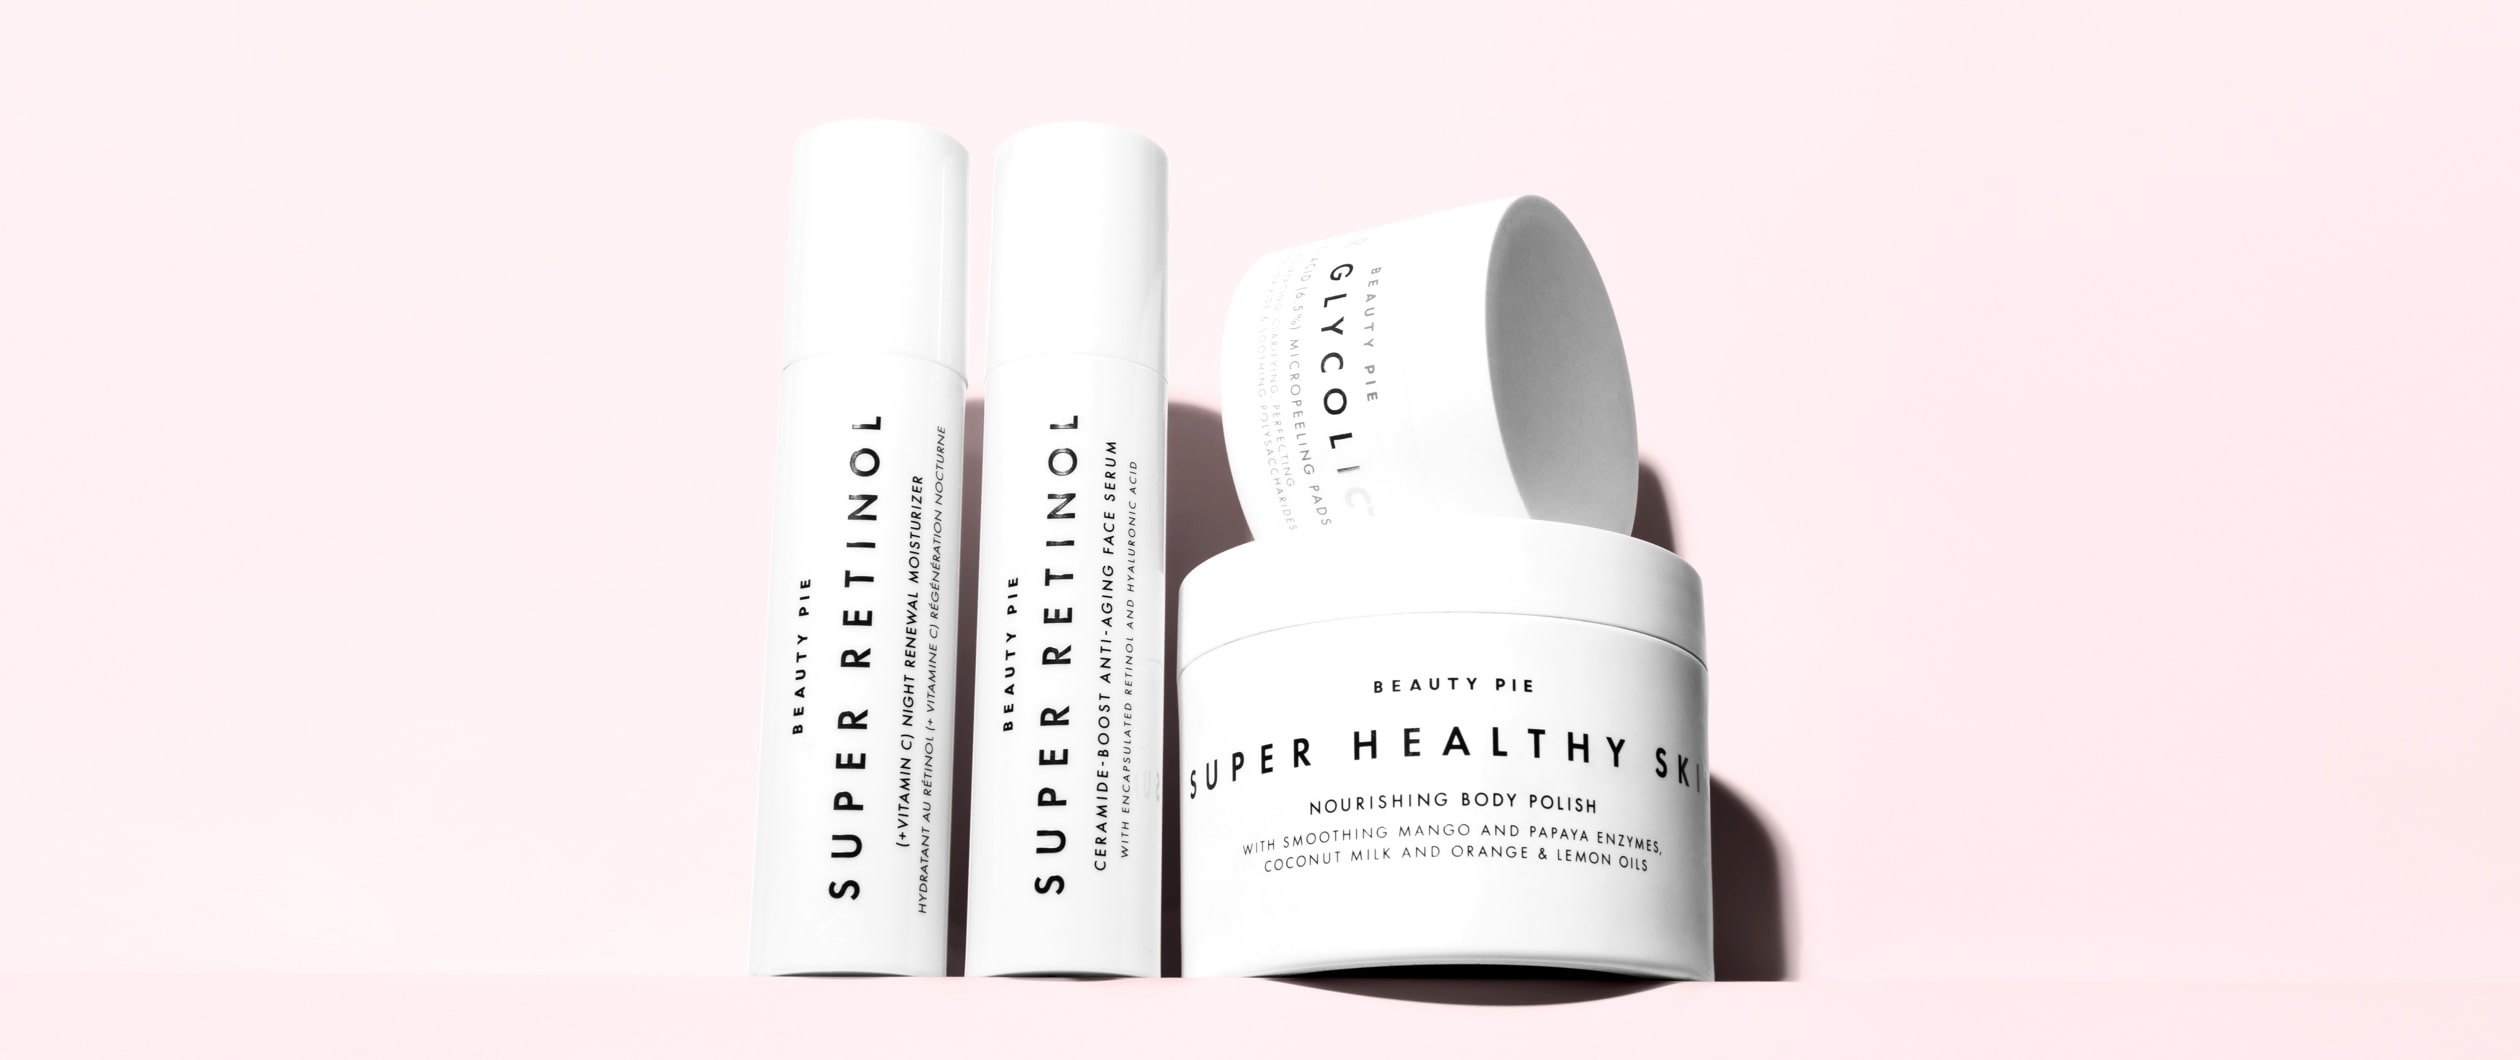 Beauty Pie is the first luxury beauty buyers' club